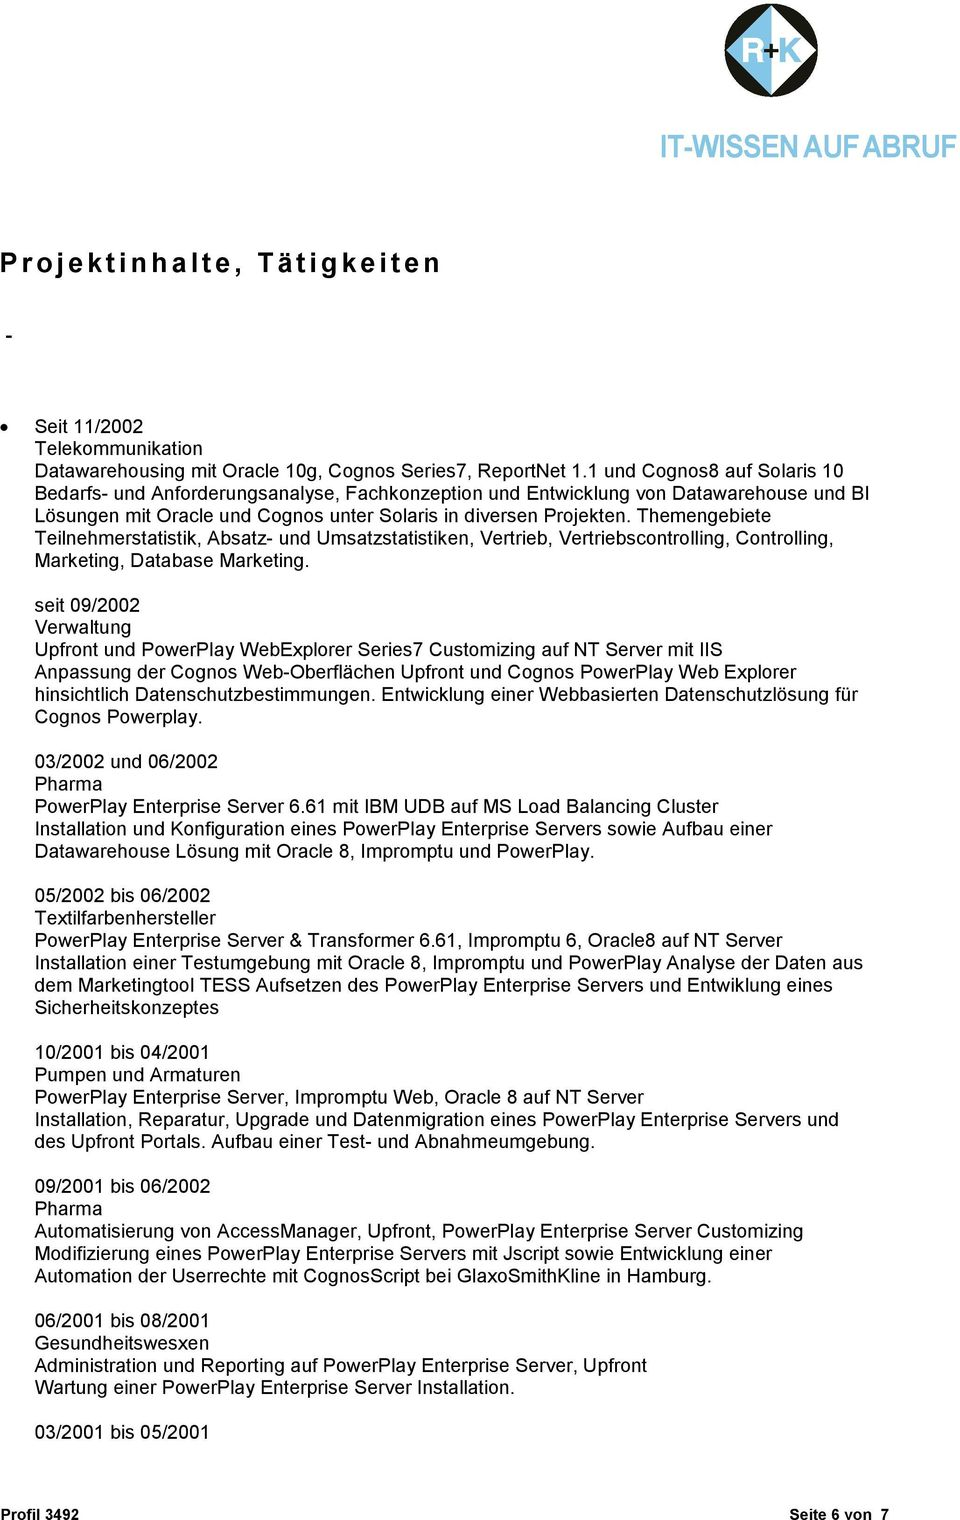 Berater-Profil Senior-Berater (Cognos. Oracle) - PDF